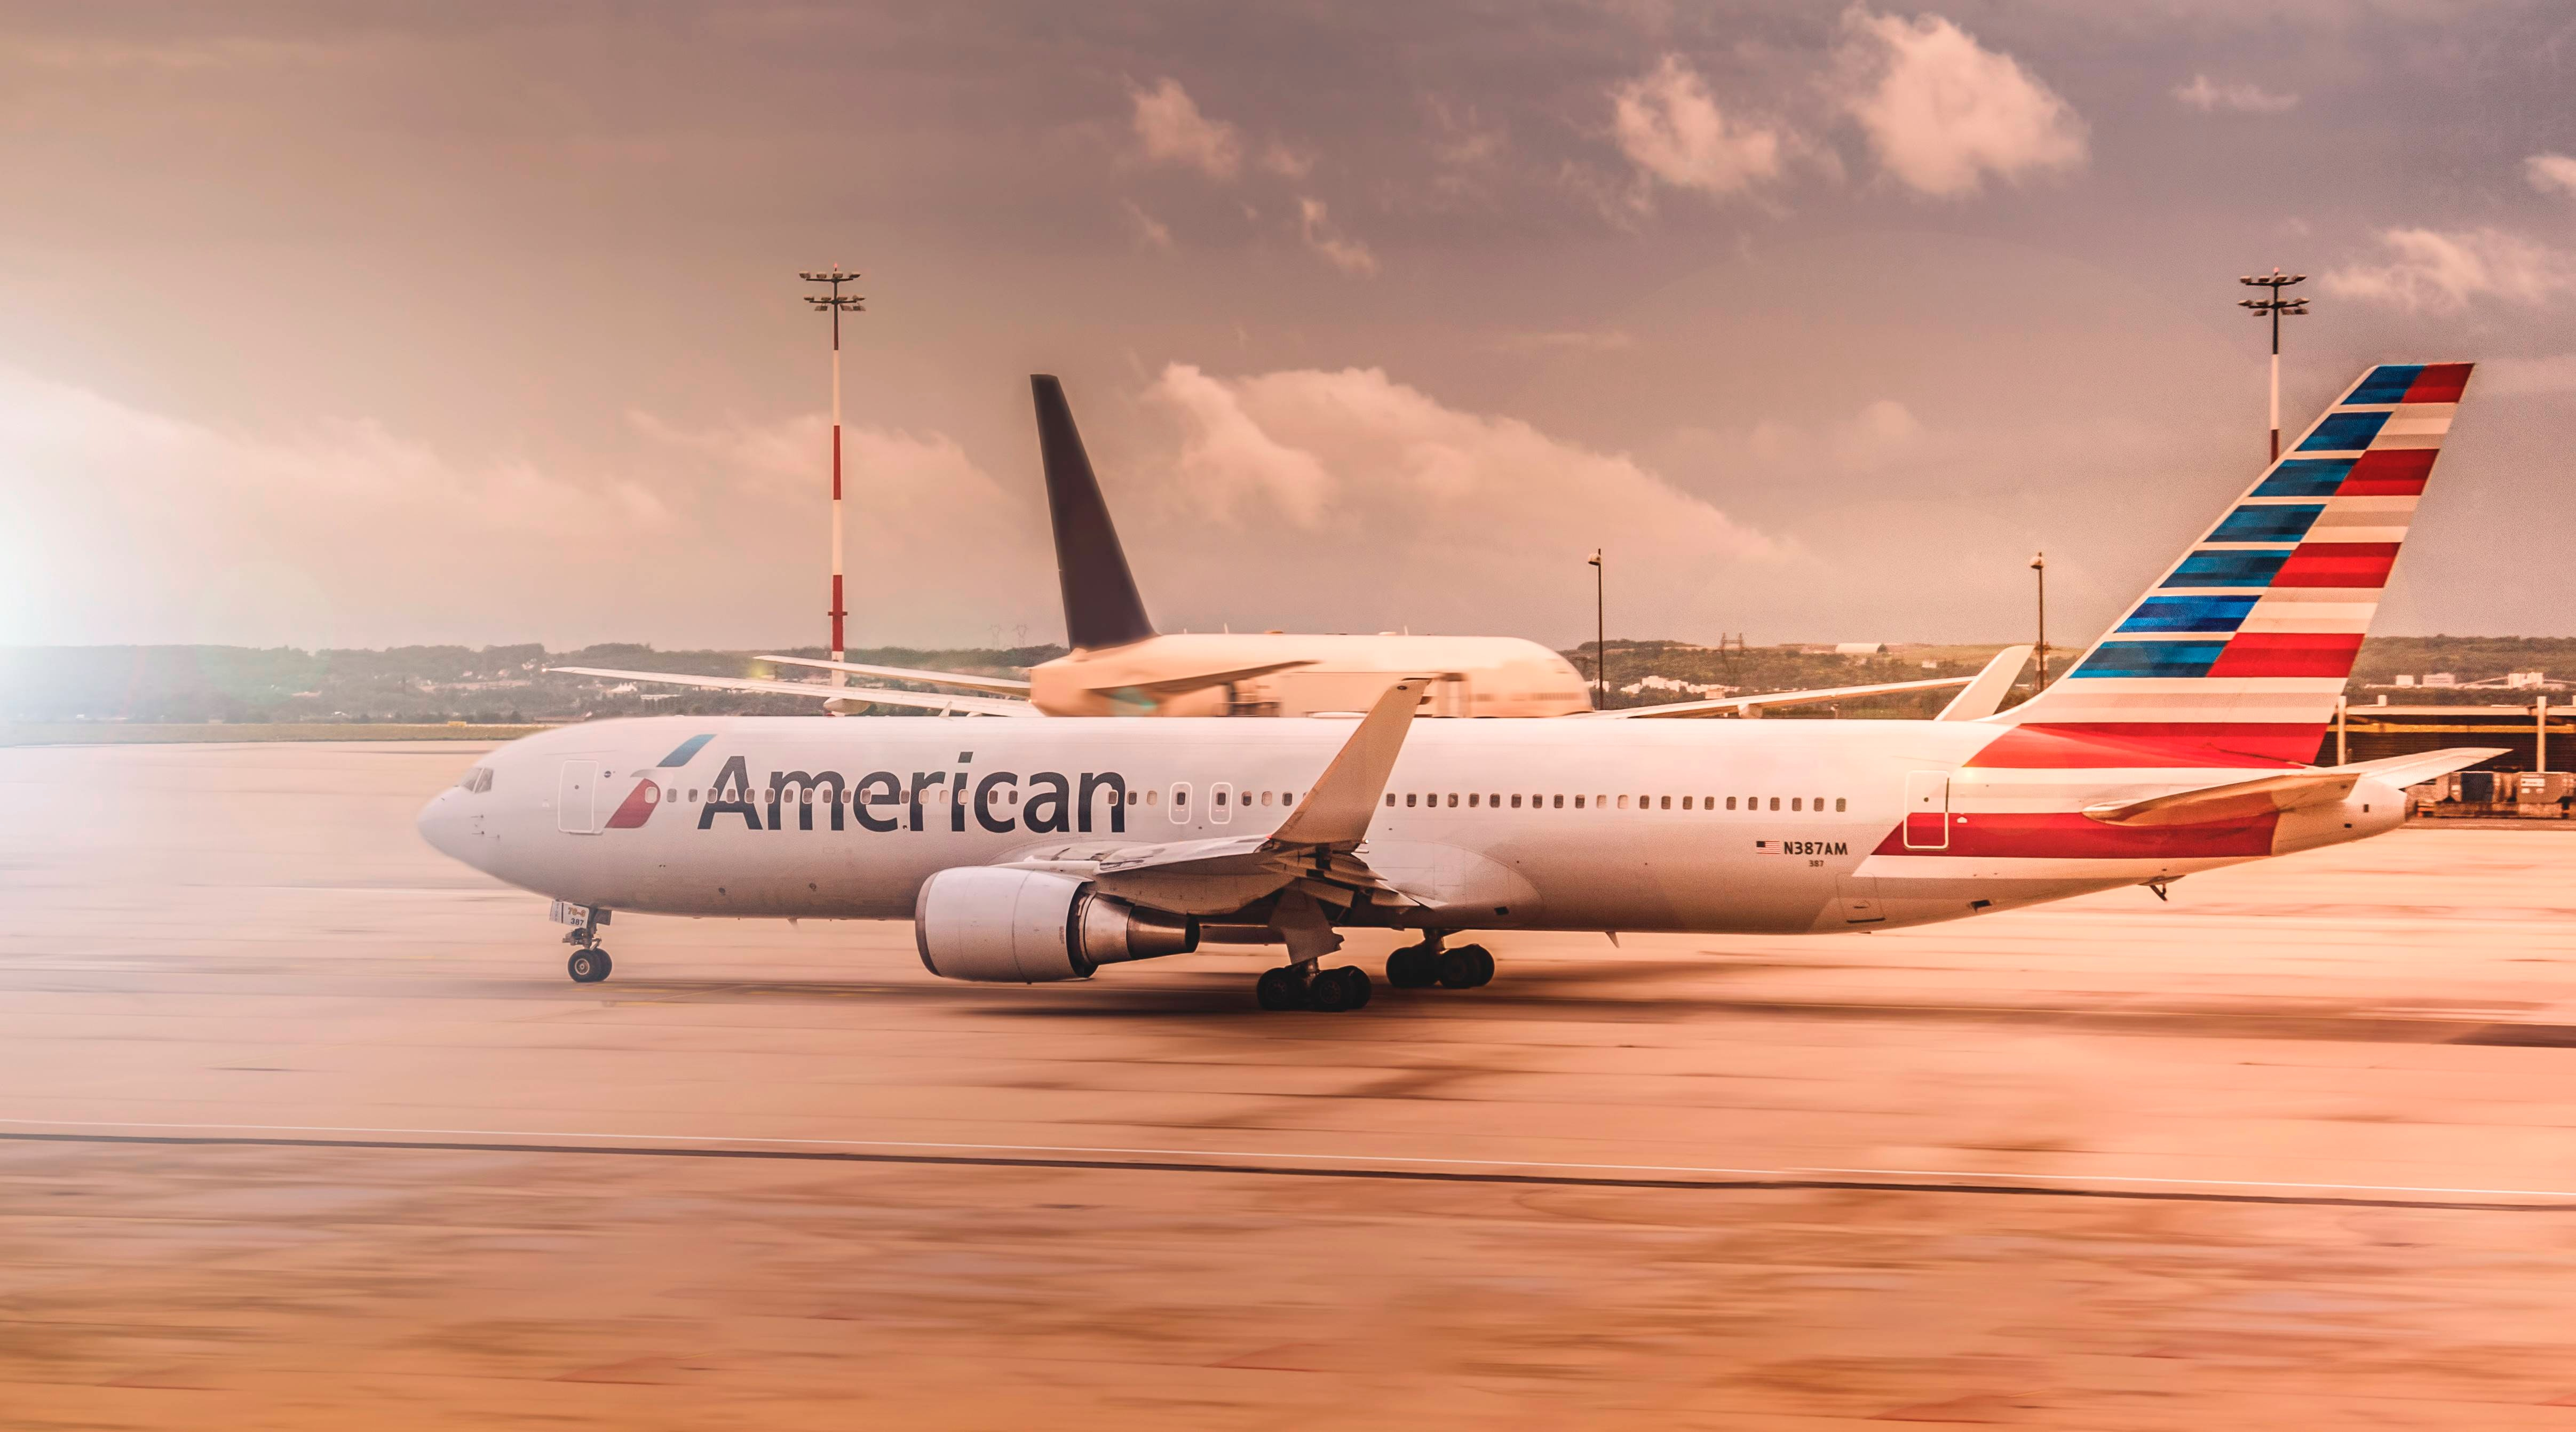 American Airlines plane on the taxiway